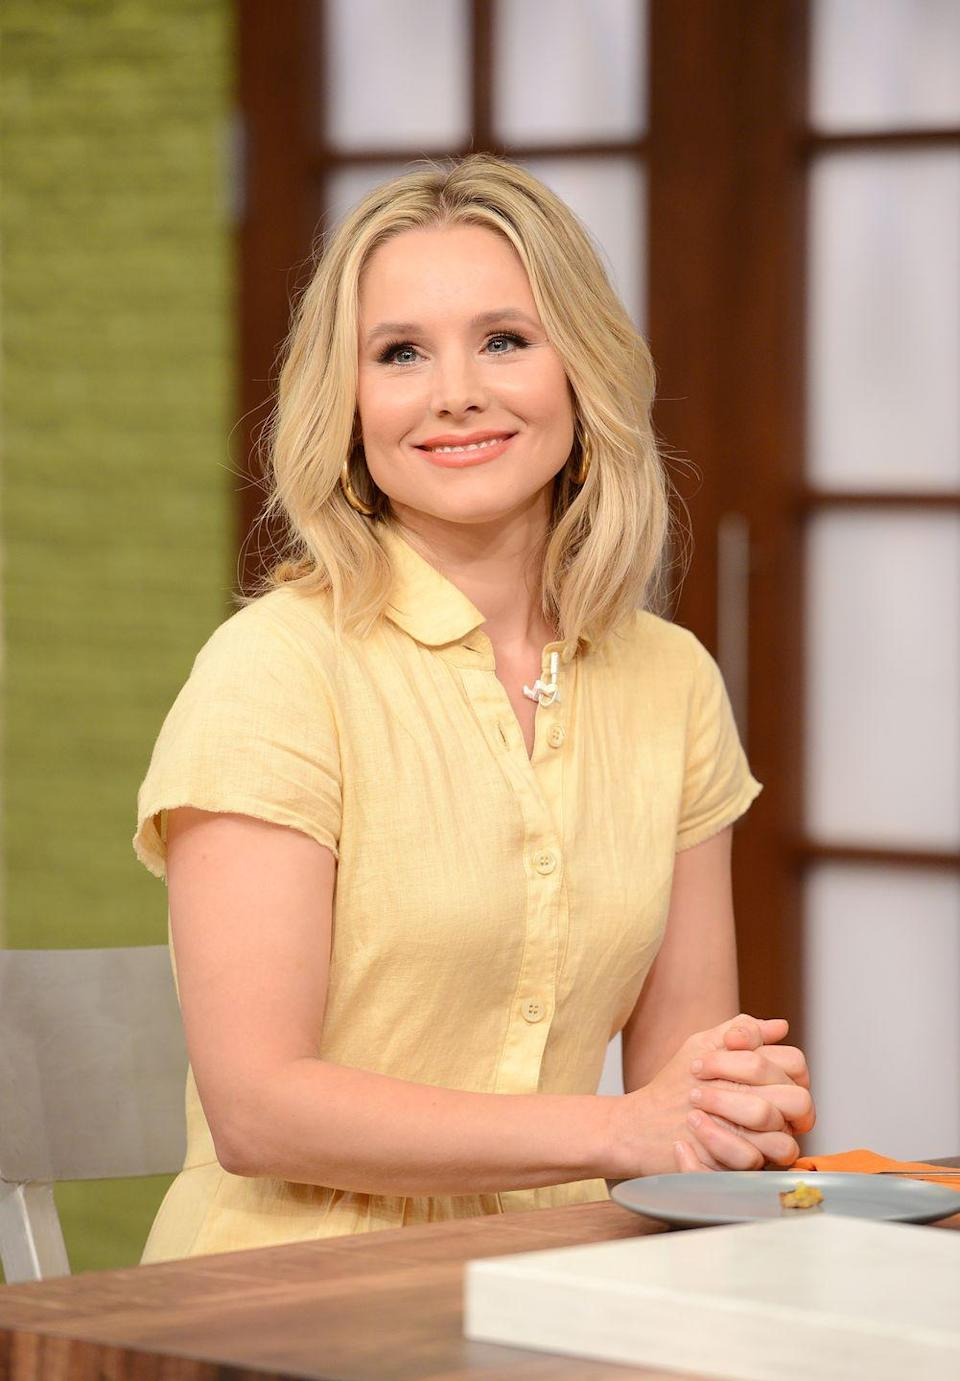 "<p>""There's nothing weak about struggling with mental illness,"" she wrote in an essay for <a href=""http://motto.time.com/4352130/kristen-bell-frozen-depression-anxiety/"" rel=""nofollow noopener"" target=""_blank"" data-ylk=""slk:Motto"" class=""link rapid-noclick-resp"">Motto</a>. ""For me, depression is not sadness. It's not having a bad day and needing a hug. It gave me a complete and utter sense of isolation and loneliness. Its debilitation was all-consuming, and it shut down my mental circuit board. I felt worthless, like I had nothing to offer, like I was a failure. Now, after seeking help, I can see that those thoughts, of course, couldn't have been more wrong. It's important for me to be candid about this so people in a similar situation can realise that they are not worthless and that they do have something to offer. We all do.""</p>"